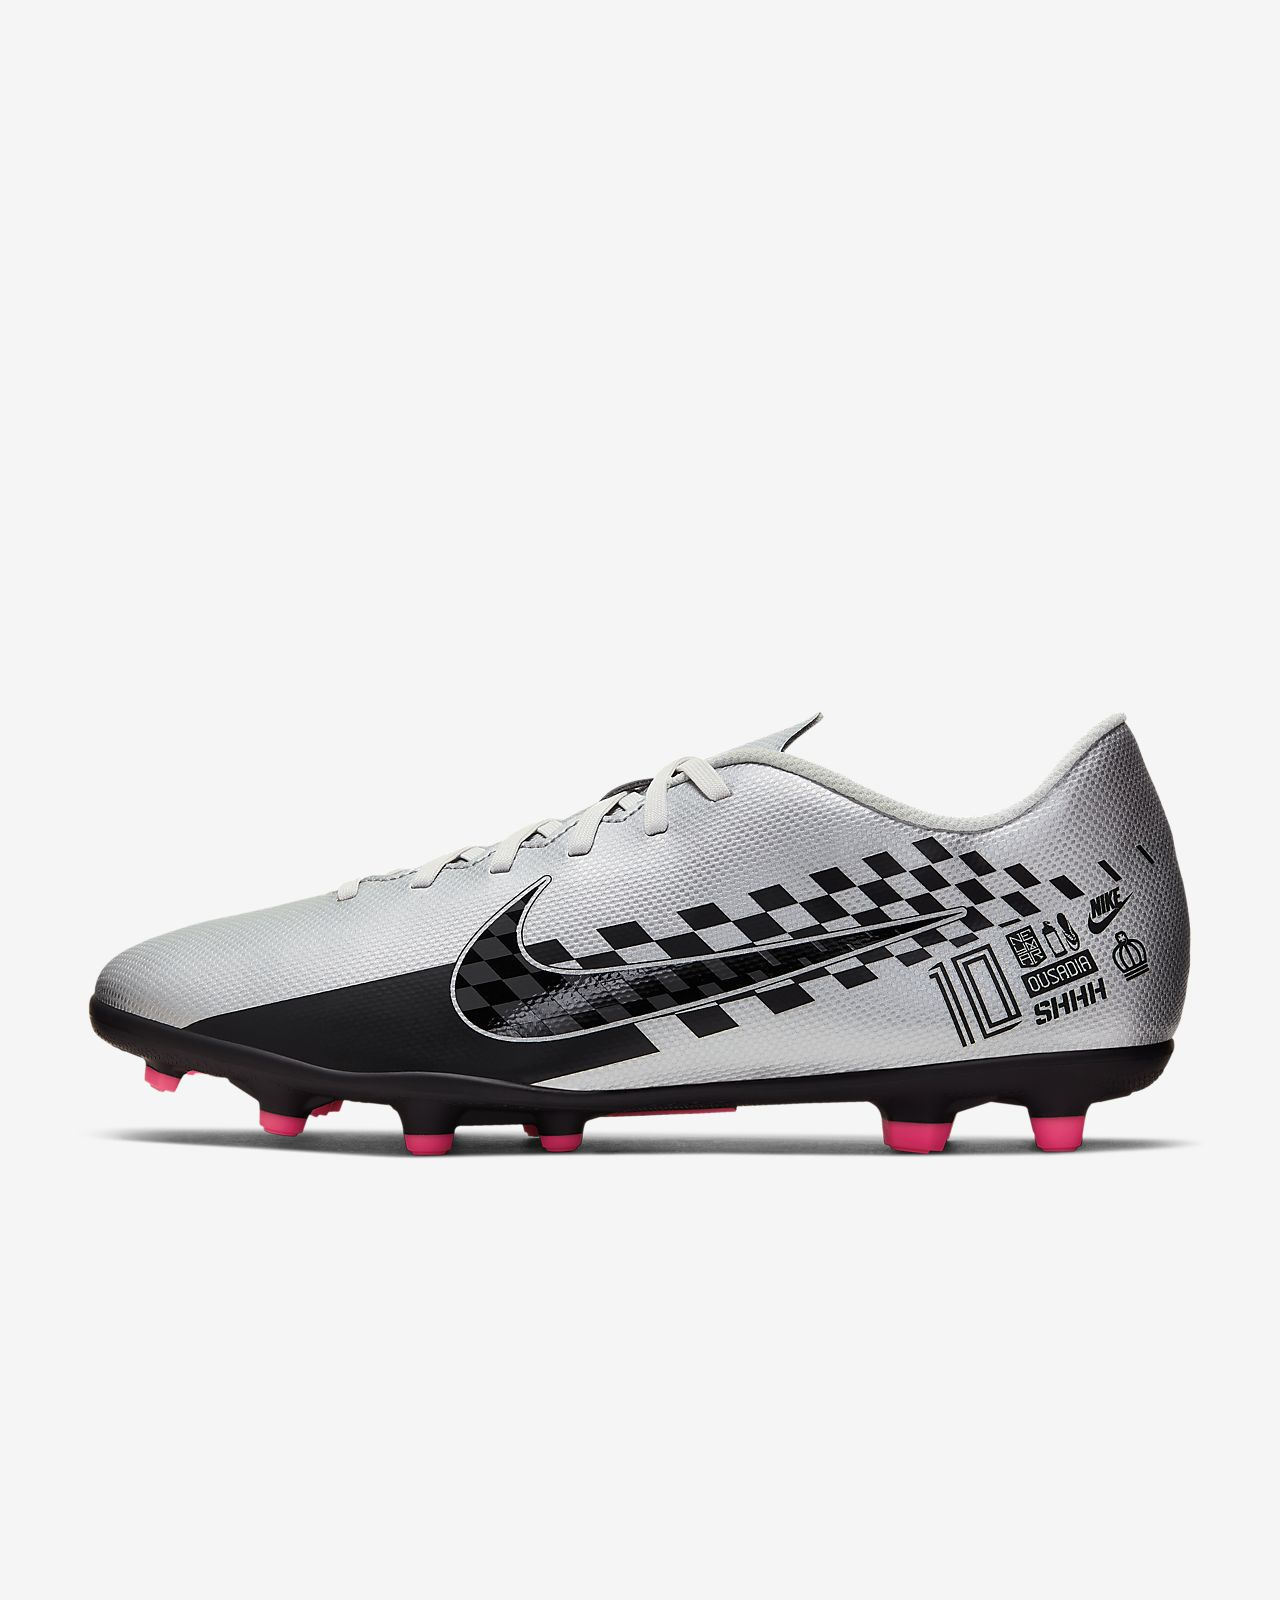 lower price with 100% top quality outlet store sale Chaussure de football à crampons multi-surfaces Nike Mercurial Vapor 13  Club Neymar Jr. MG